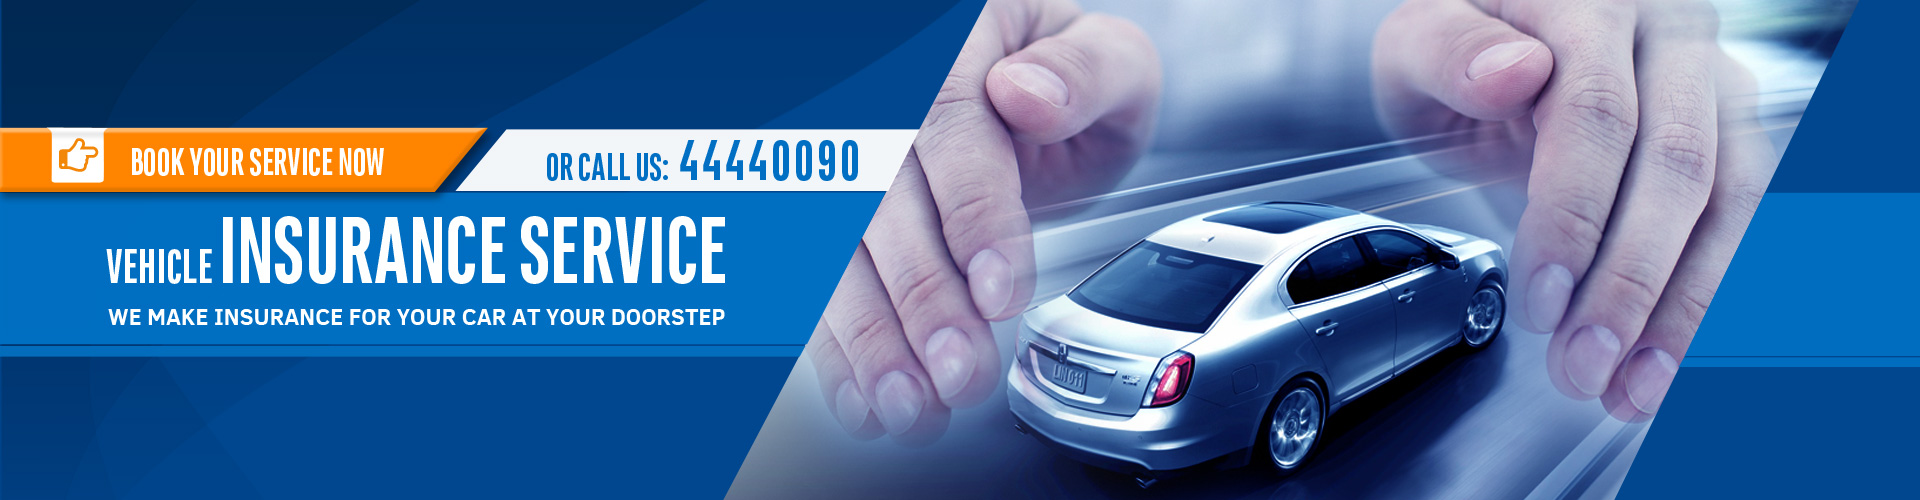 Vehicle Insurance Services in Qatar